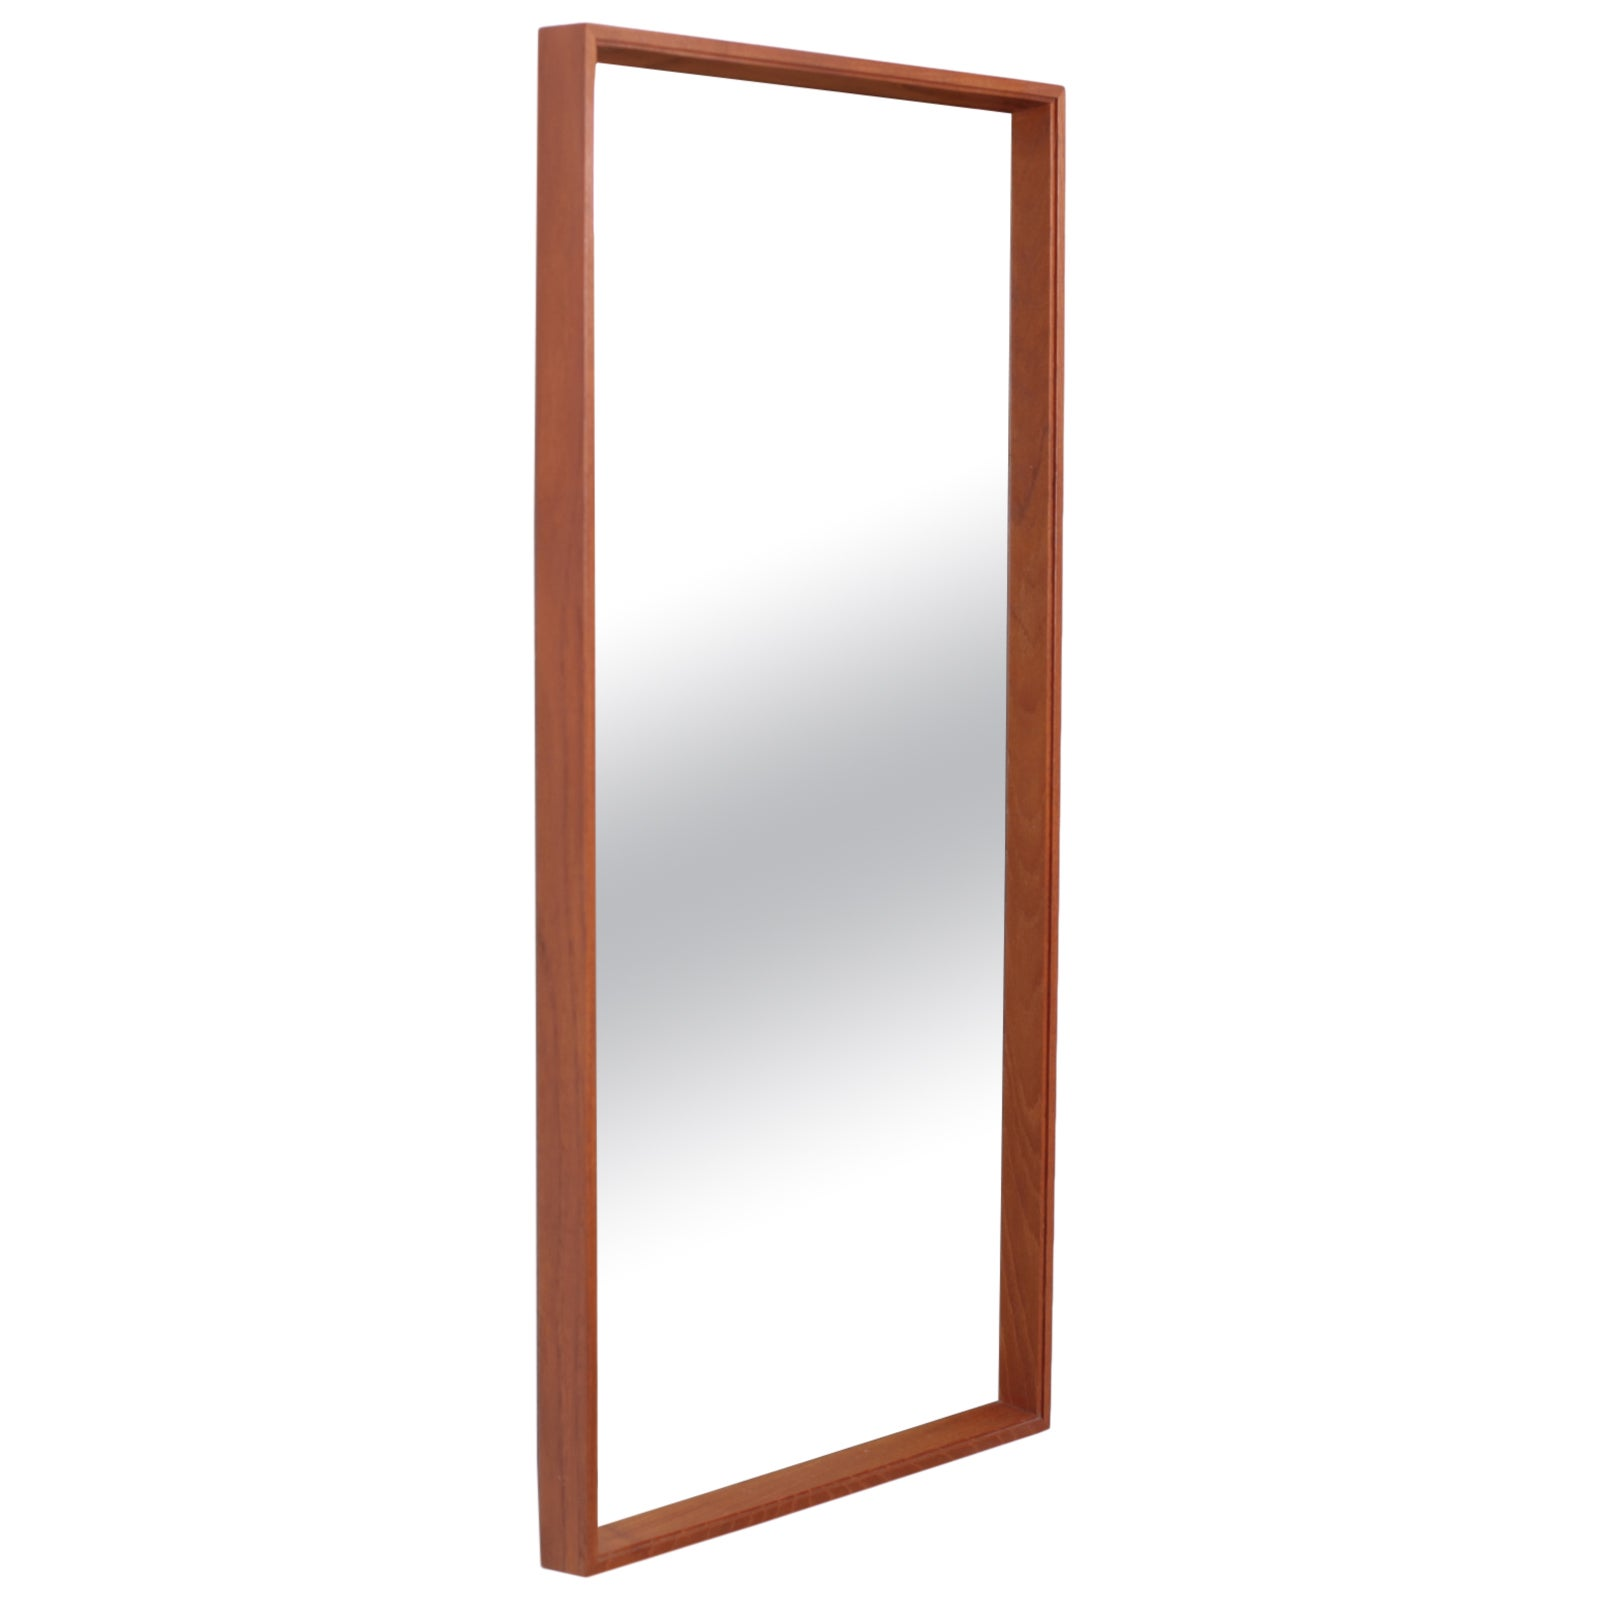 Paul McCobb Planner Group Wall Mirror in Walnut